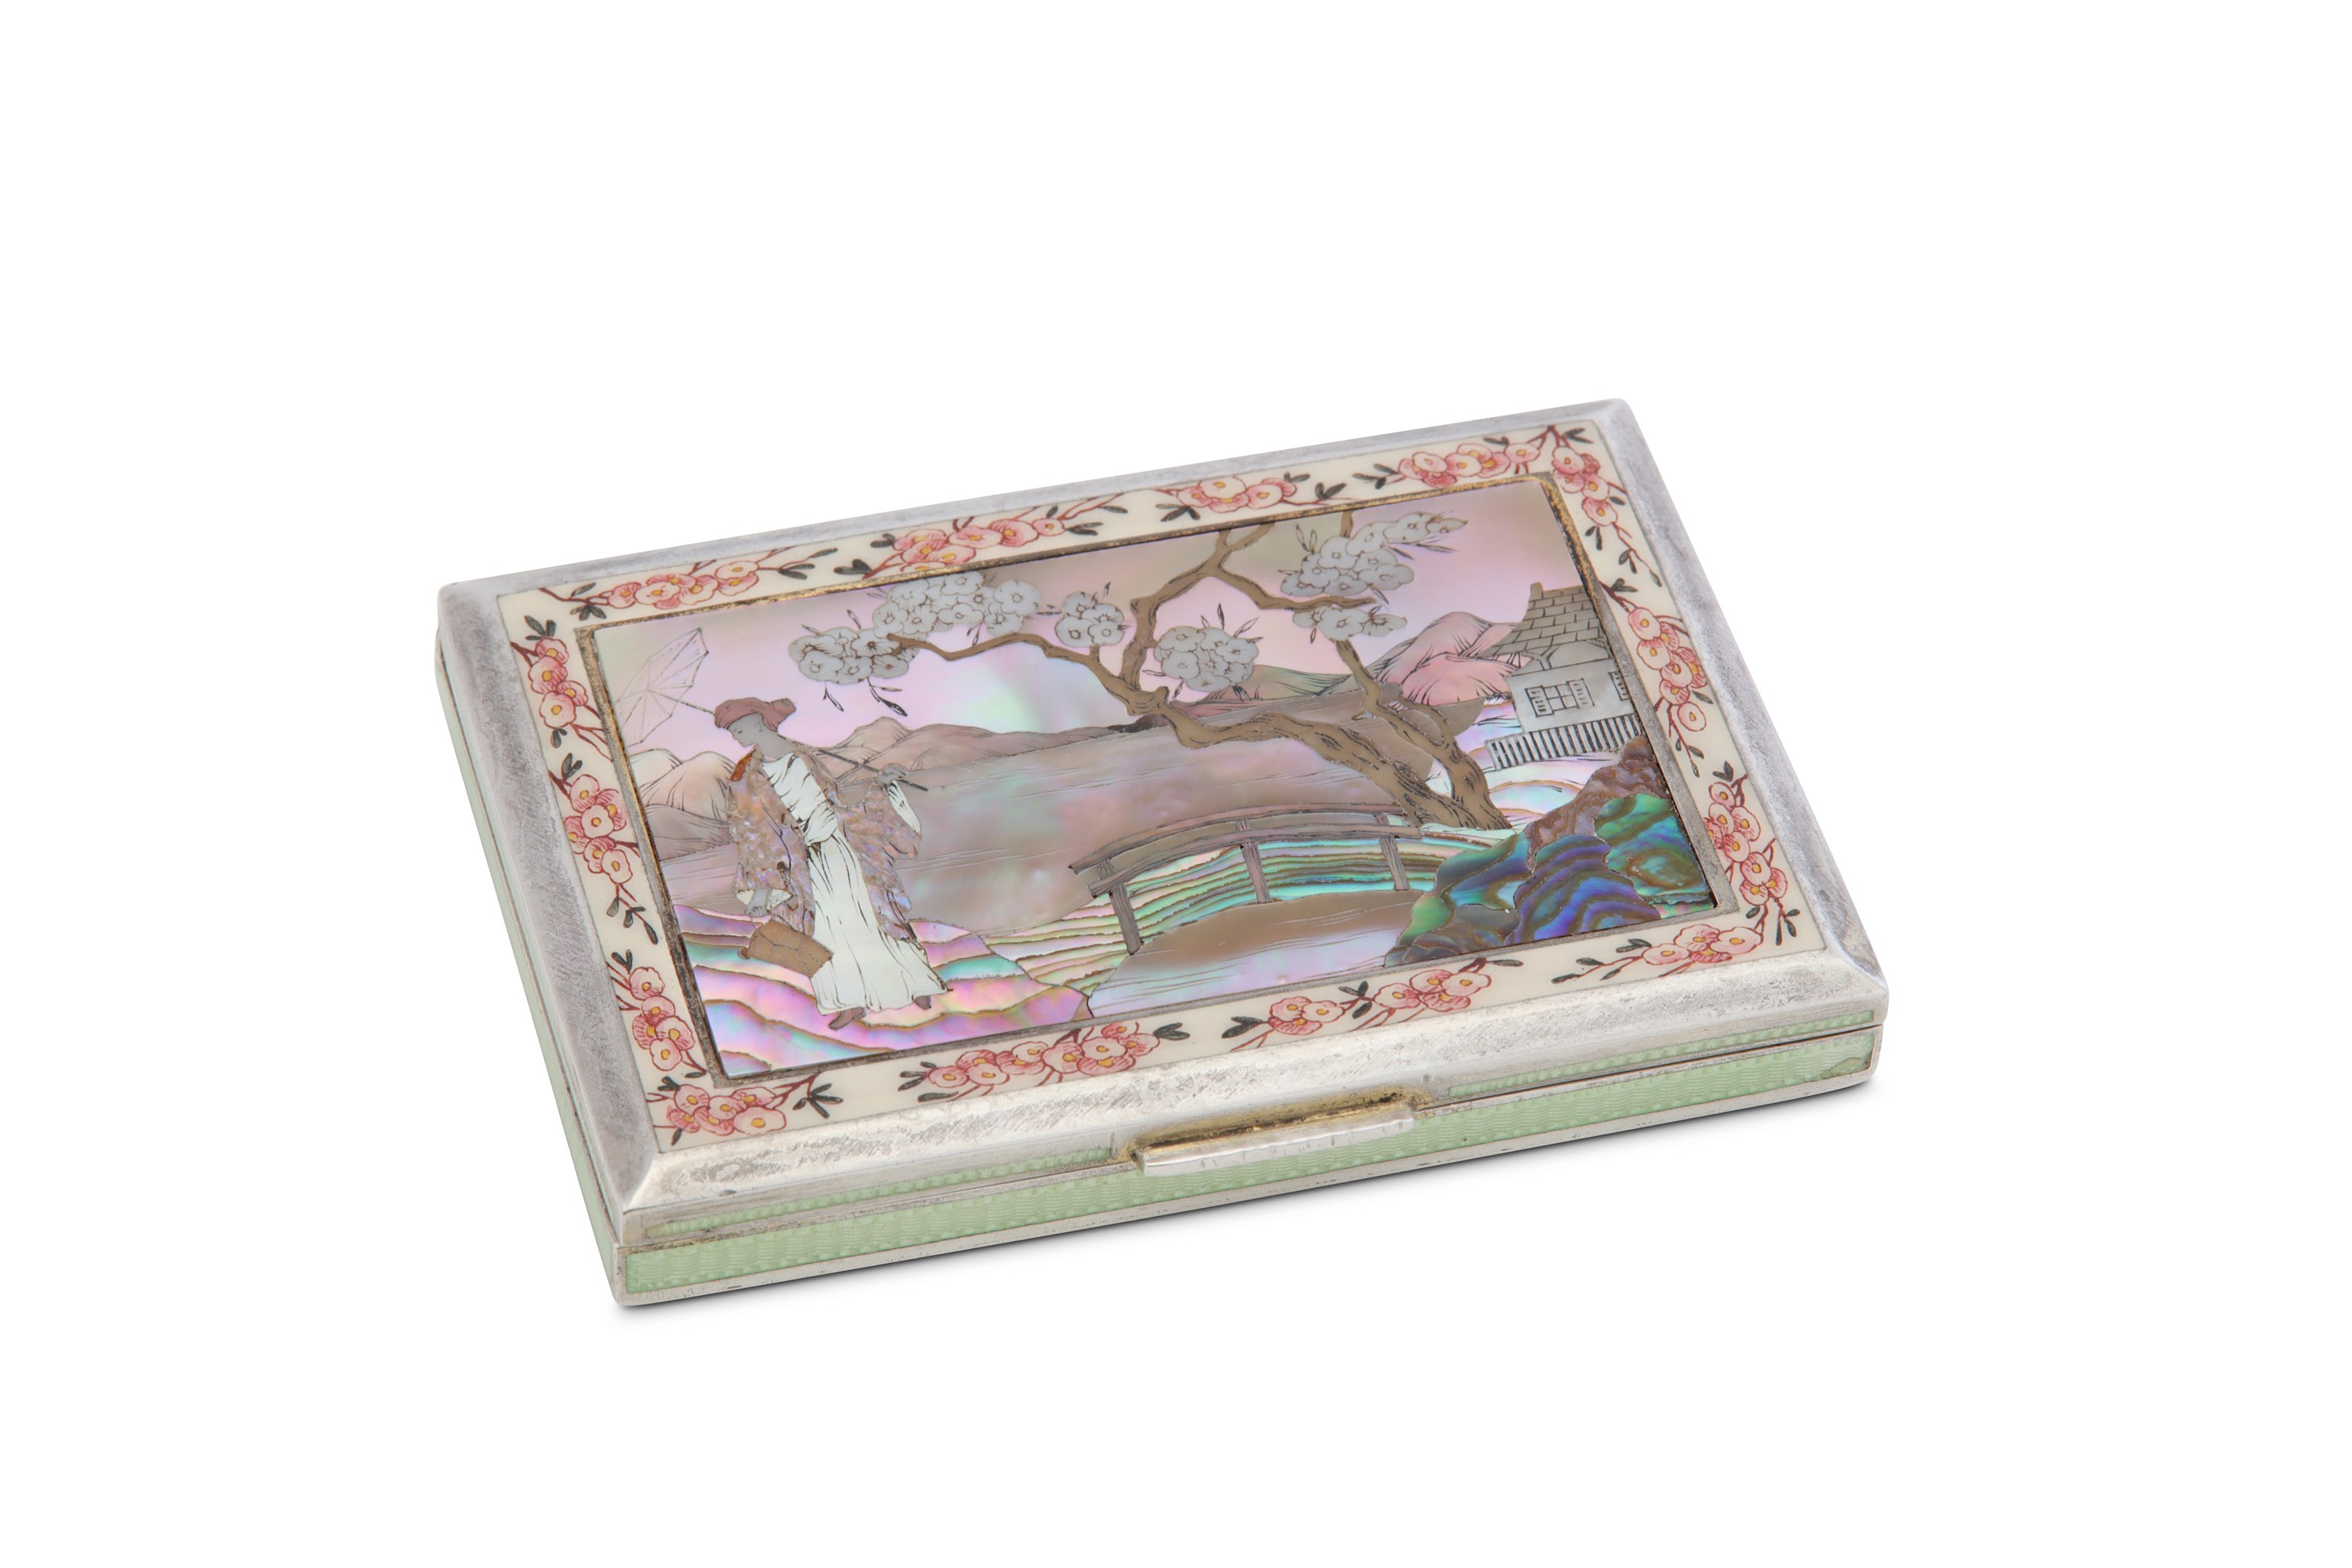 Lot 5 - An early 20th century Austrian 935 standard silver, enamel and abalone shell inlaid cigarette case,